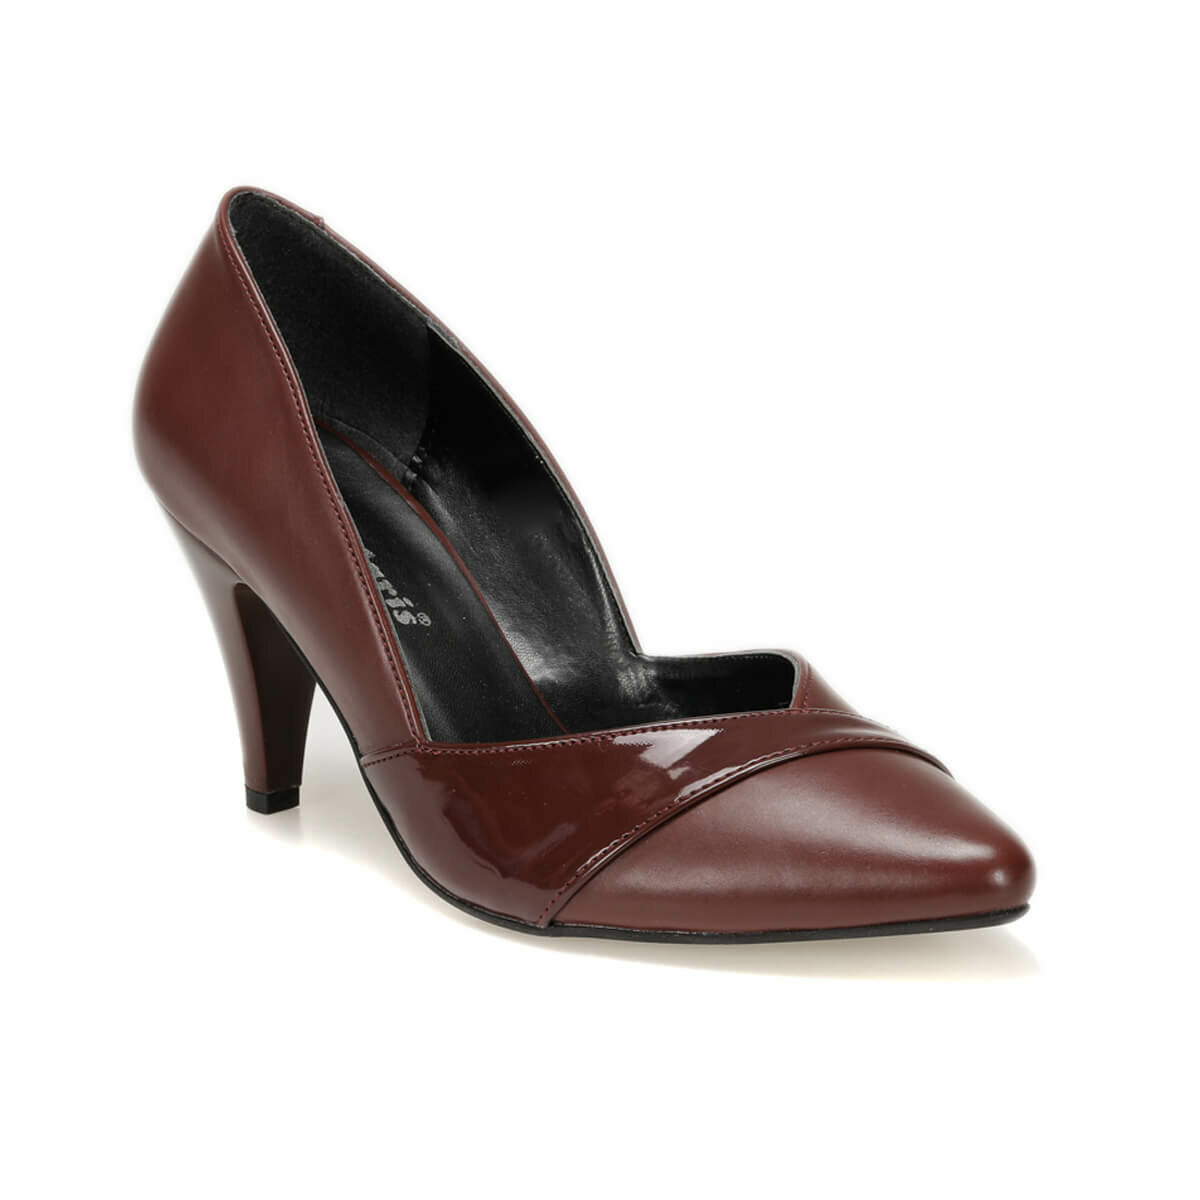 FLO 92.314083.Z Burgundy Women 'S Shoes Polaris